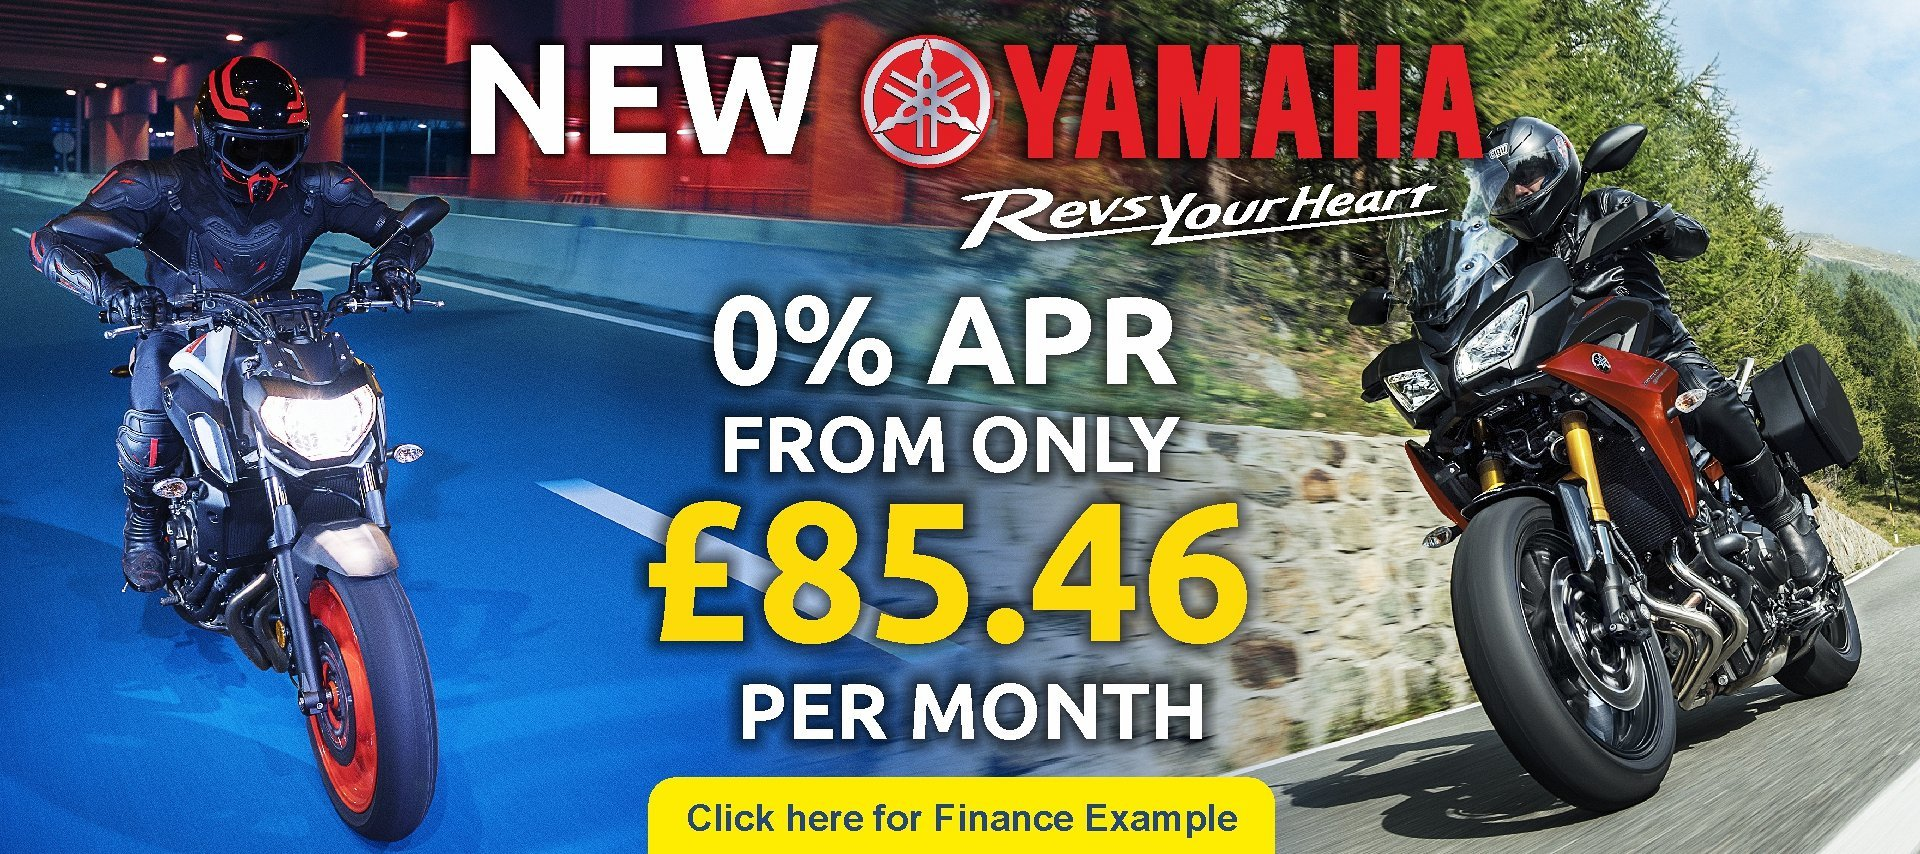 A range of new Yamaha's available from CMC bikes are on 0% from only £85.46 per month.